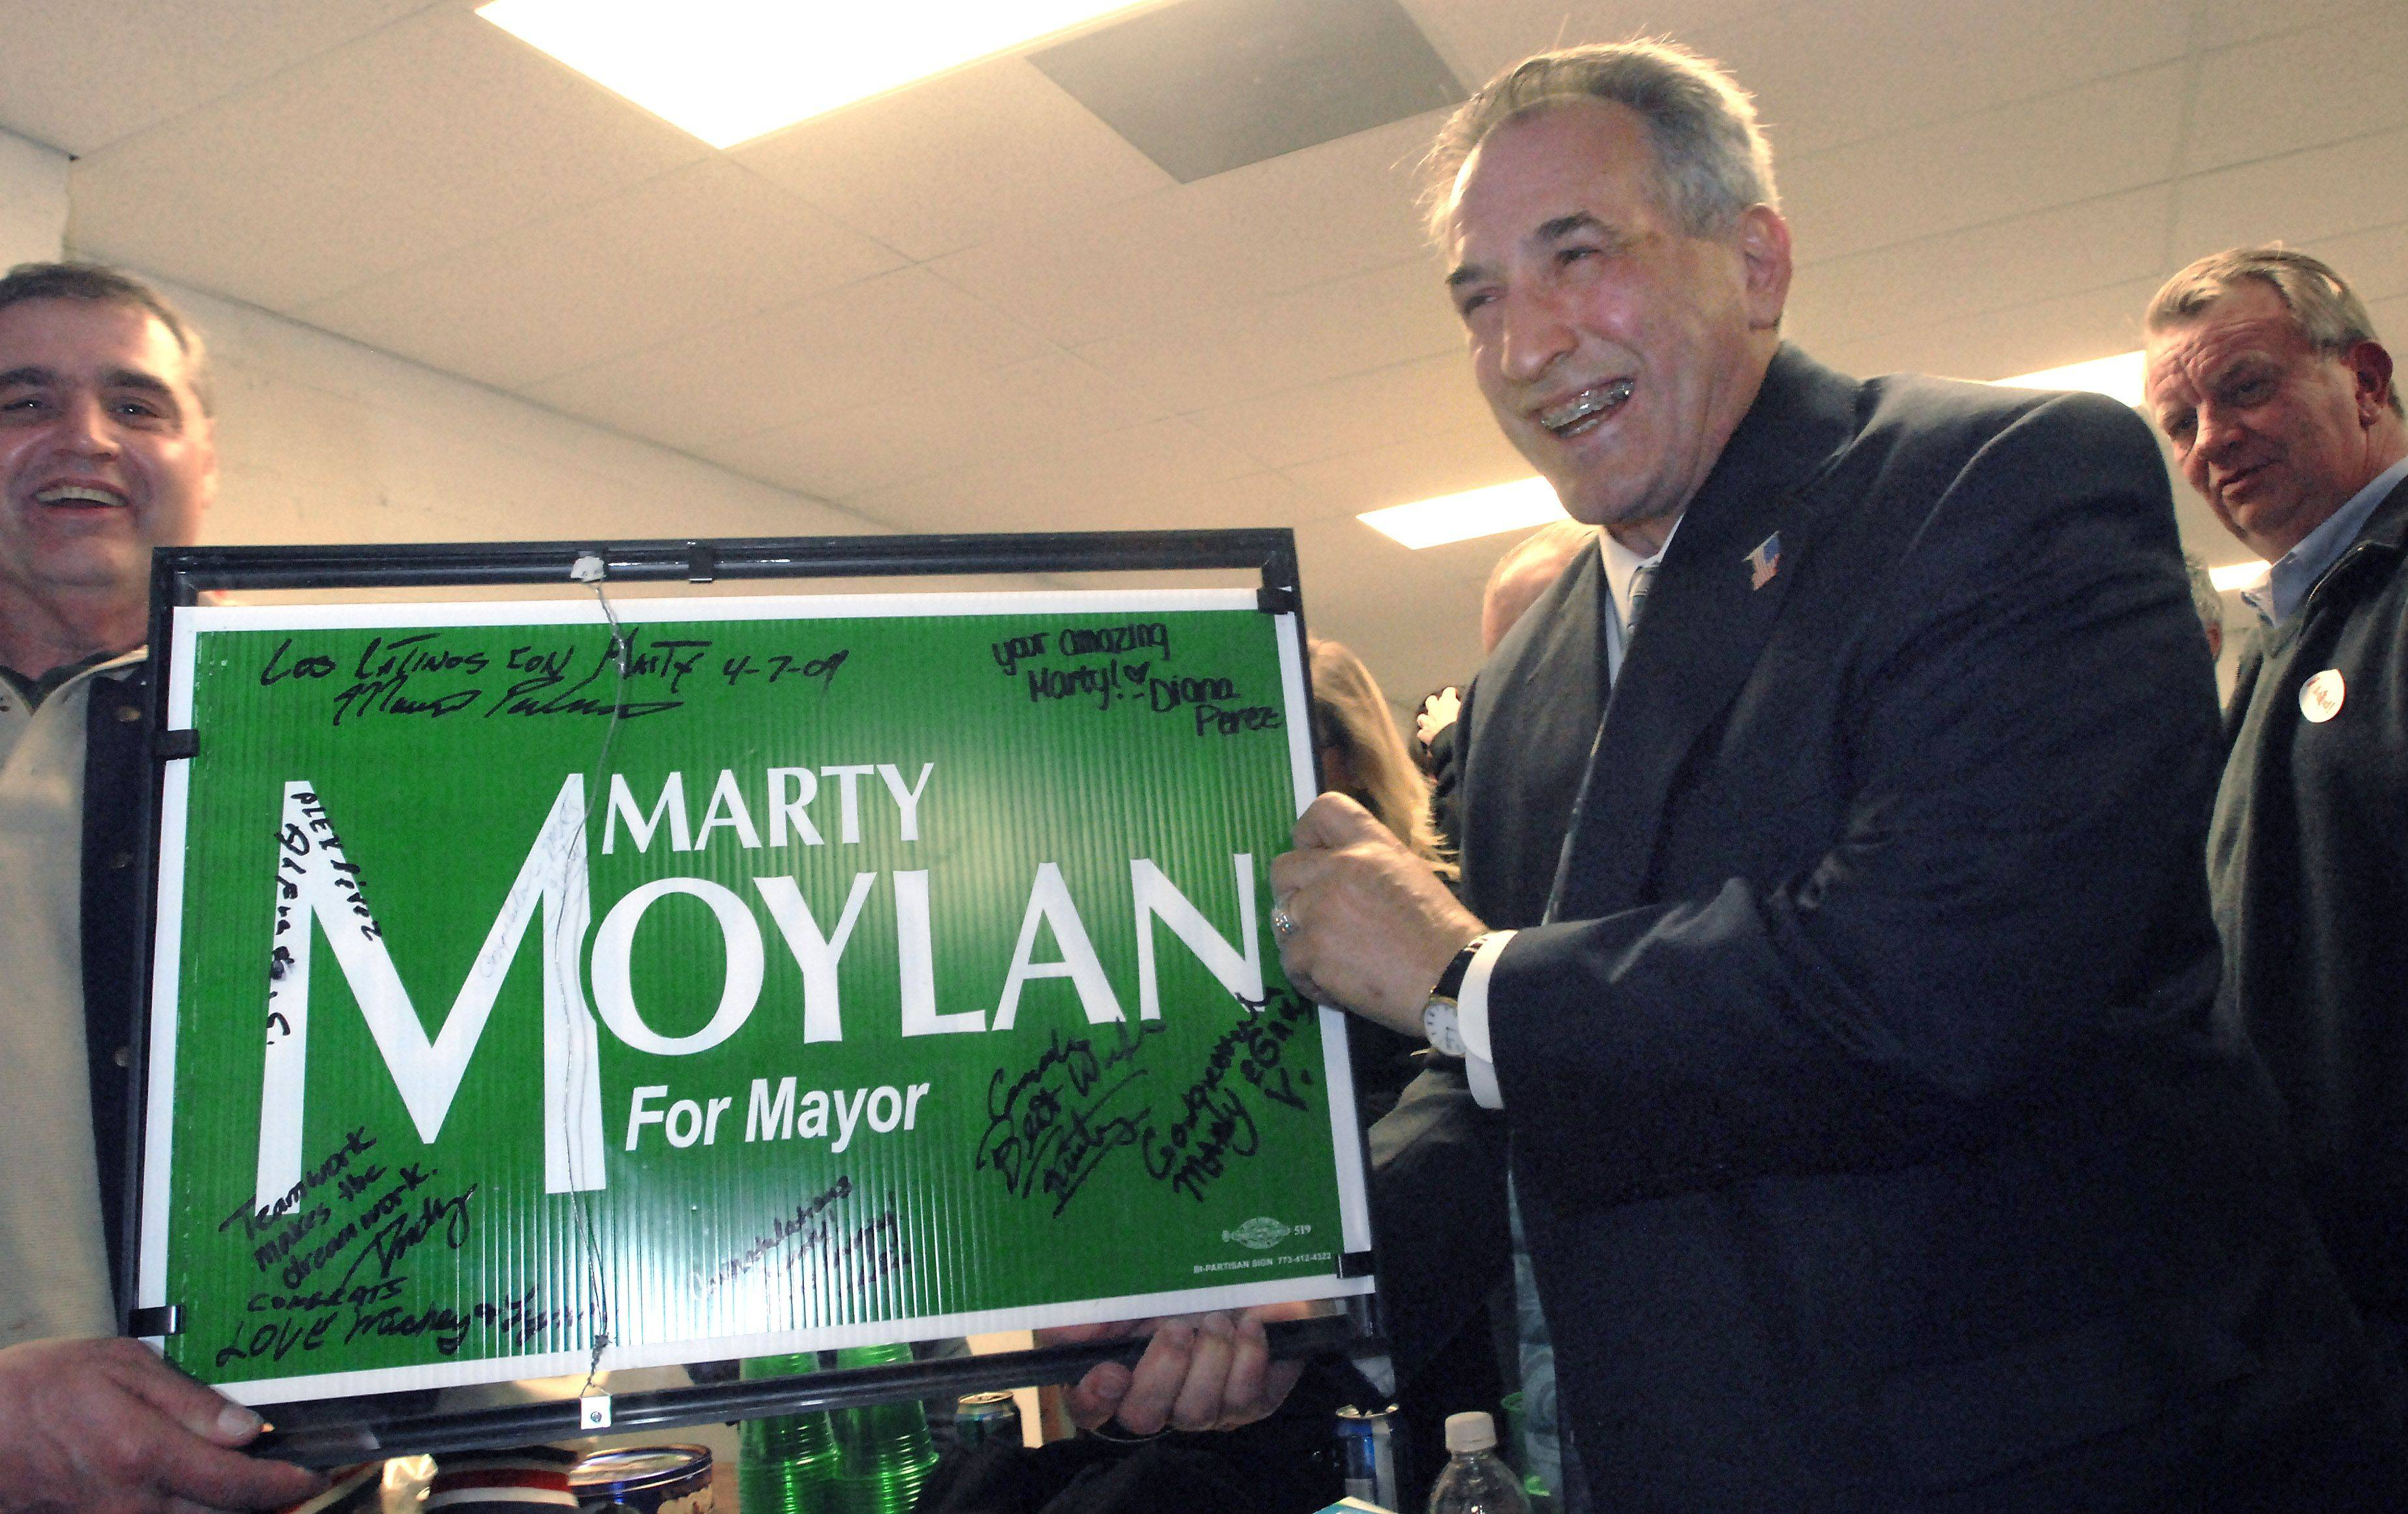 Des Plaines mayoral candidate Marty Moylan holds up a campaign sign signed by supporters in 2009.